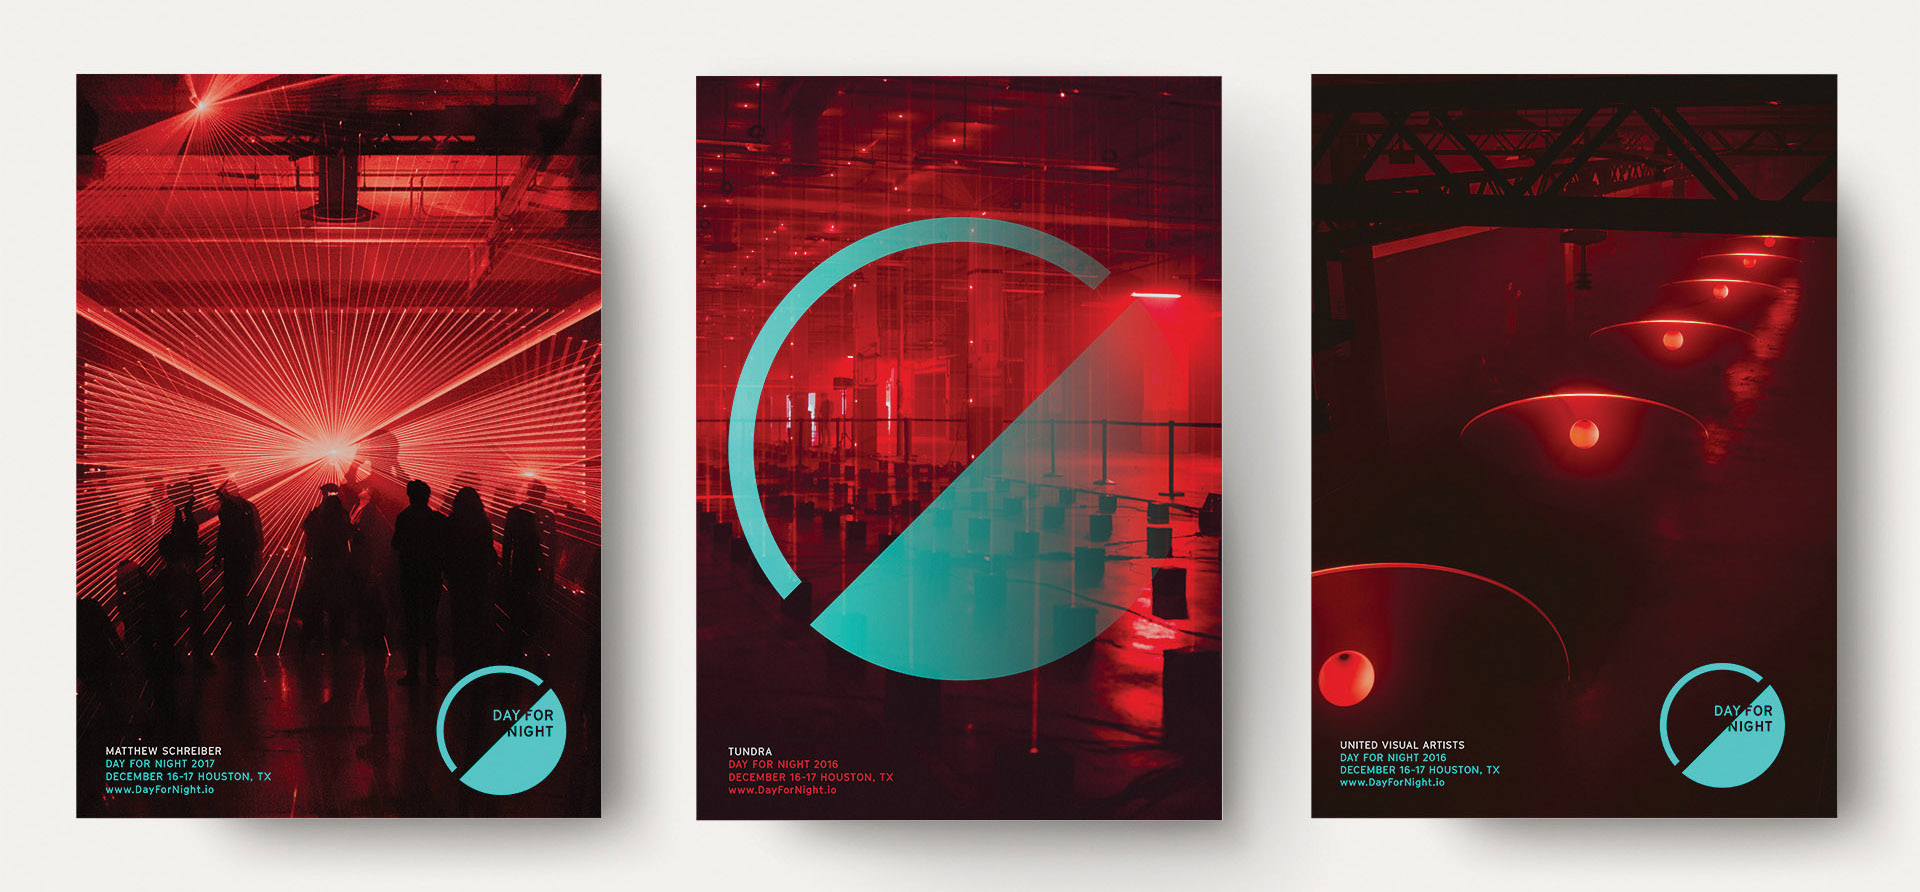 Day for Night Festival branding posters